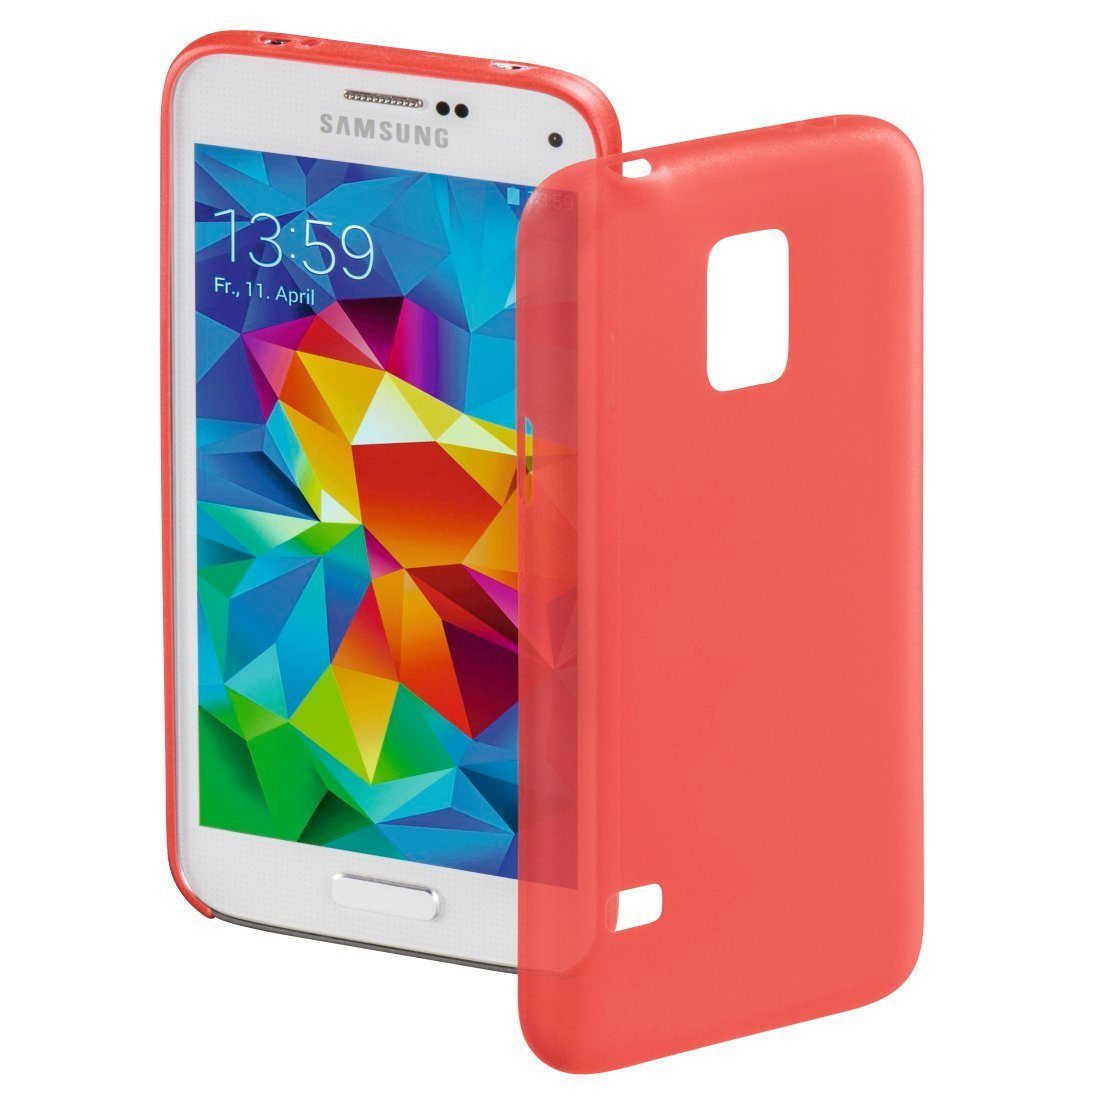 Hama Cover Ultra Slim für Samsung Galaxy S5 mini, Rot